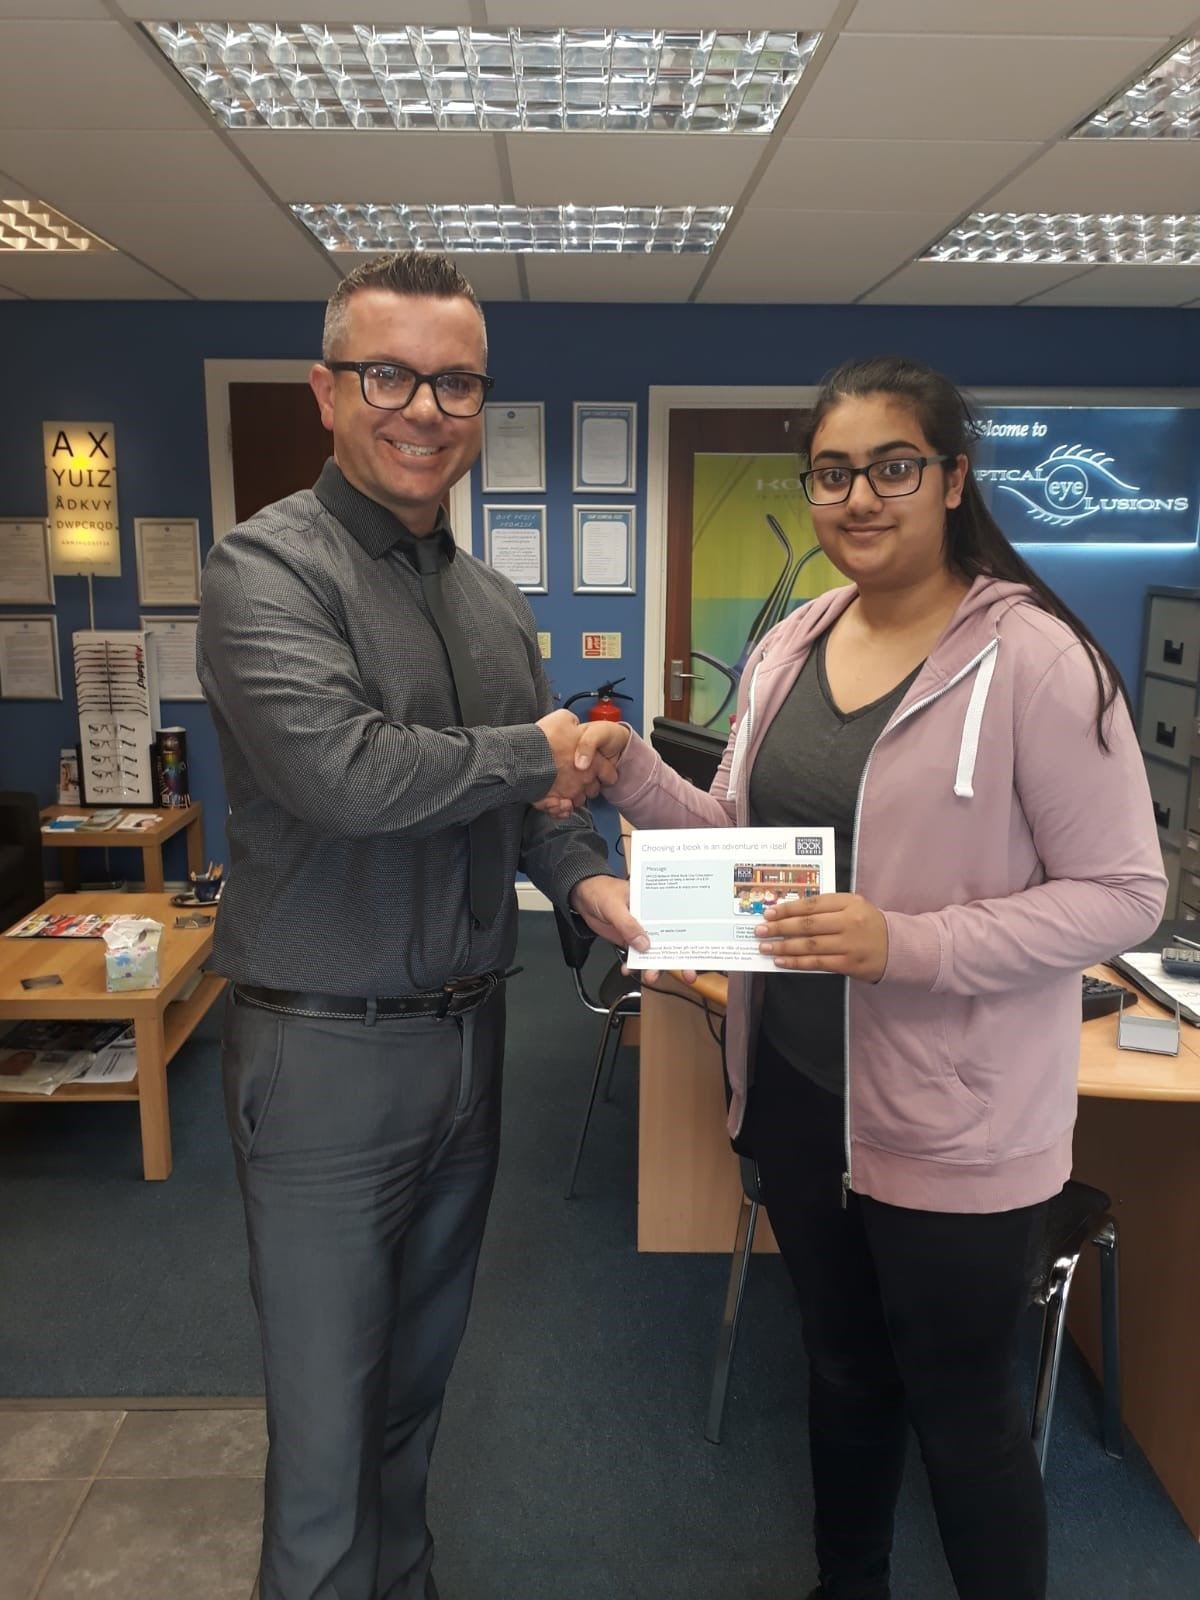 Deepika collected her book voucher from Optical Eye Lusions in Hall Green, Birmingham